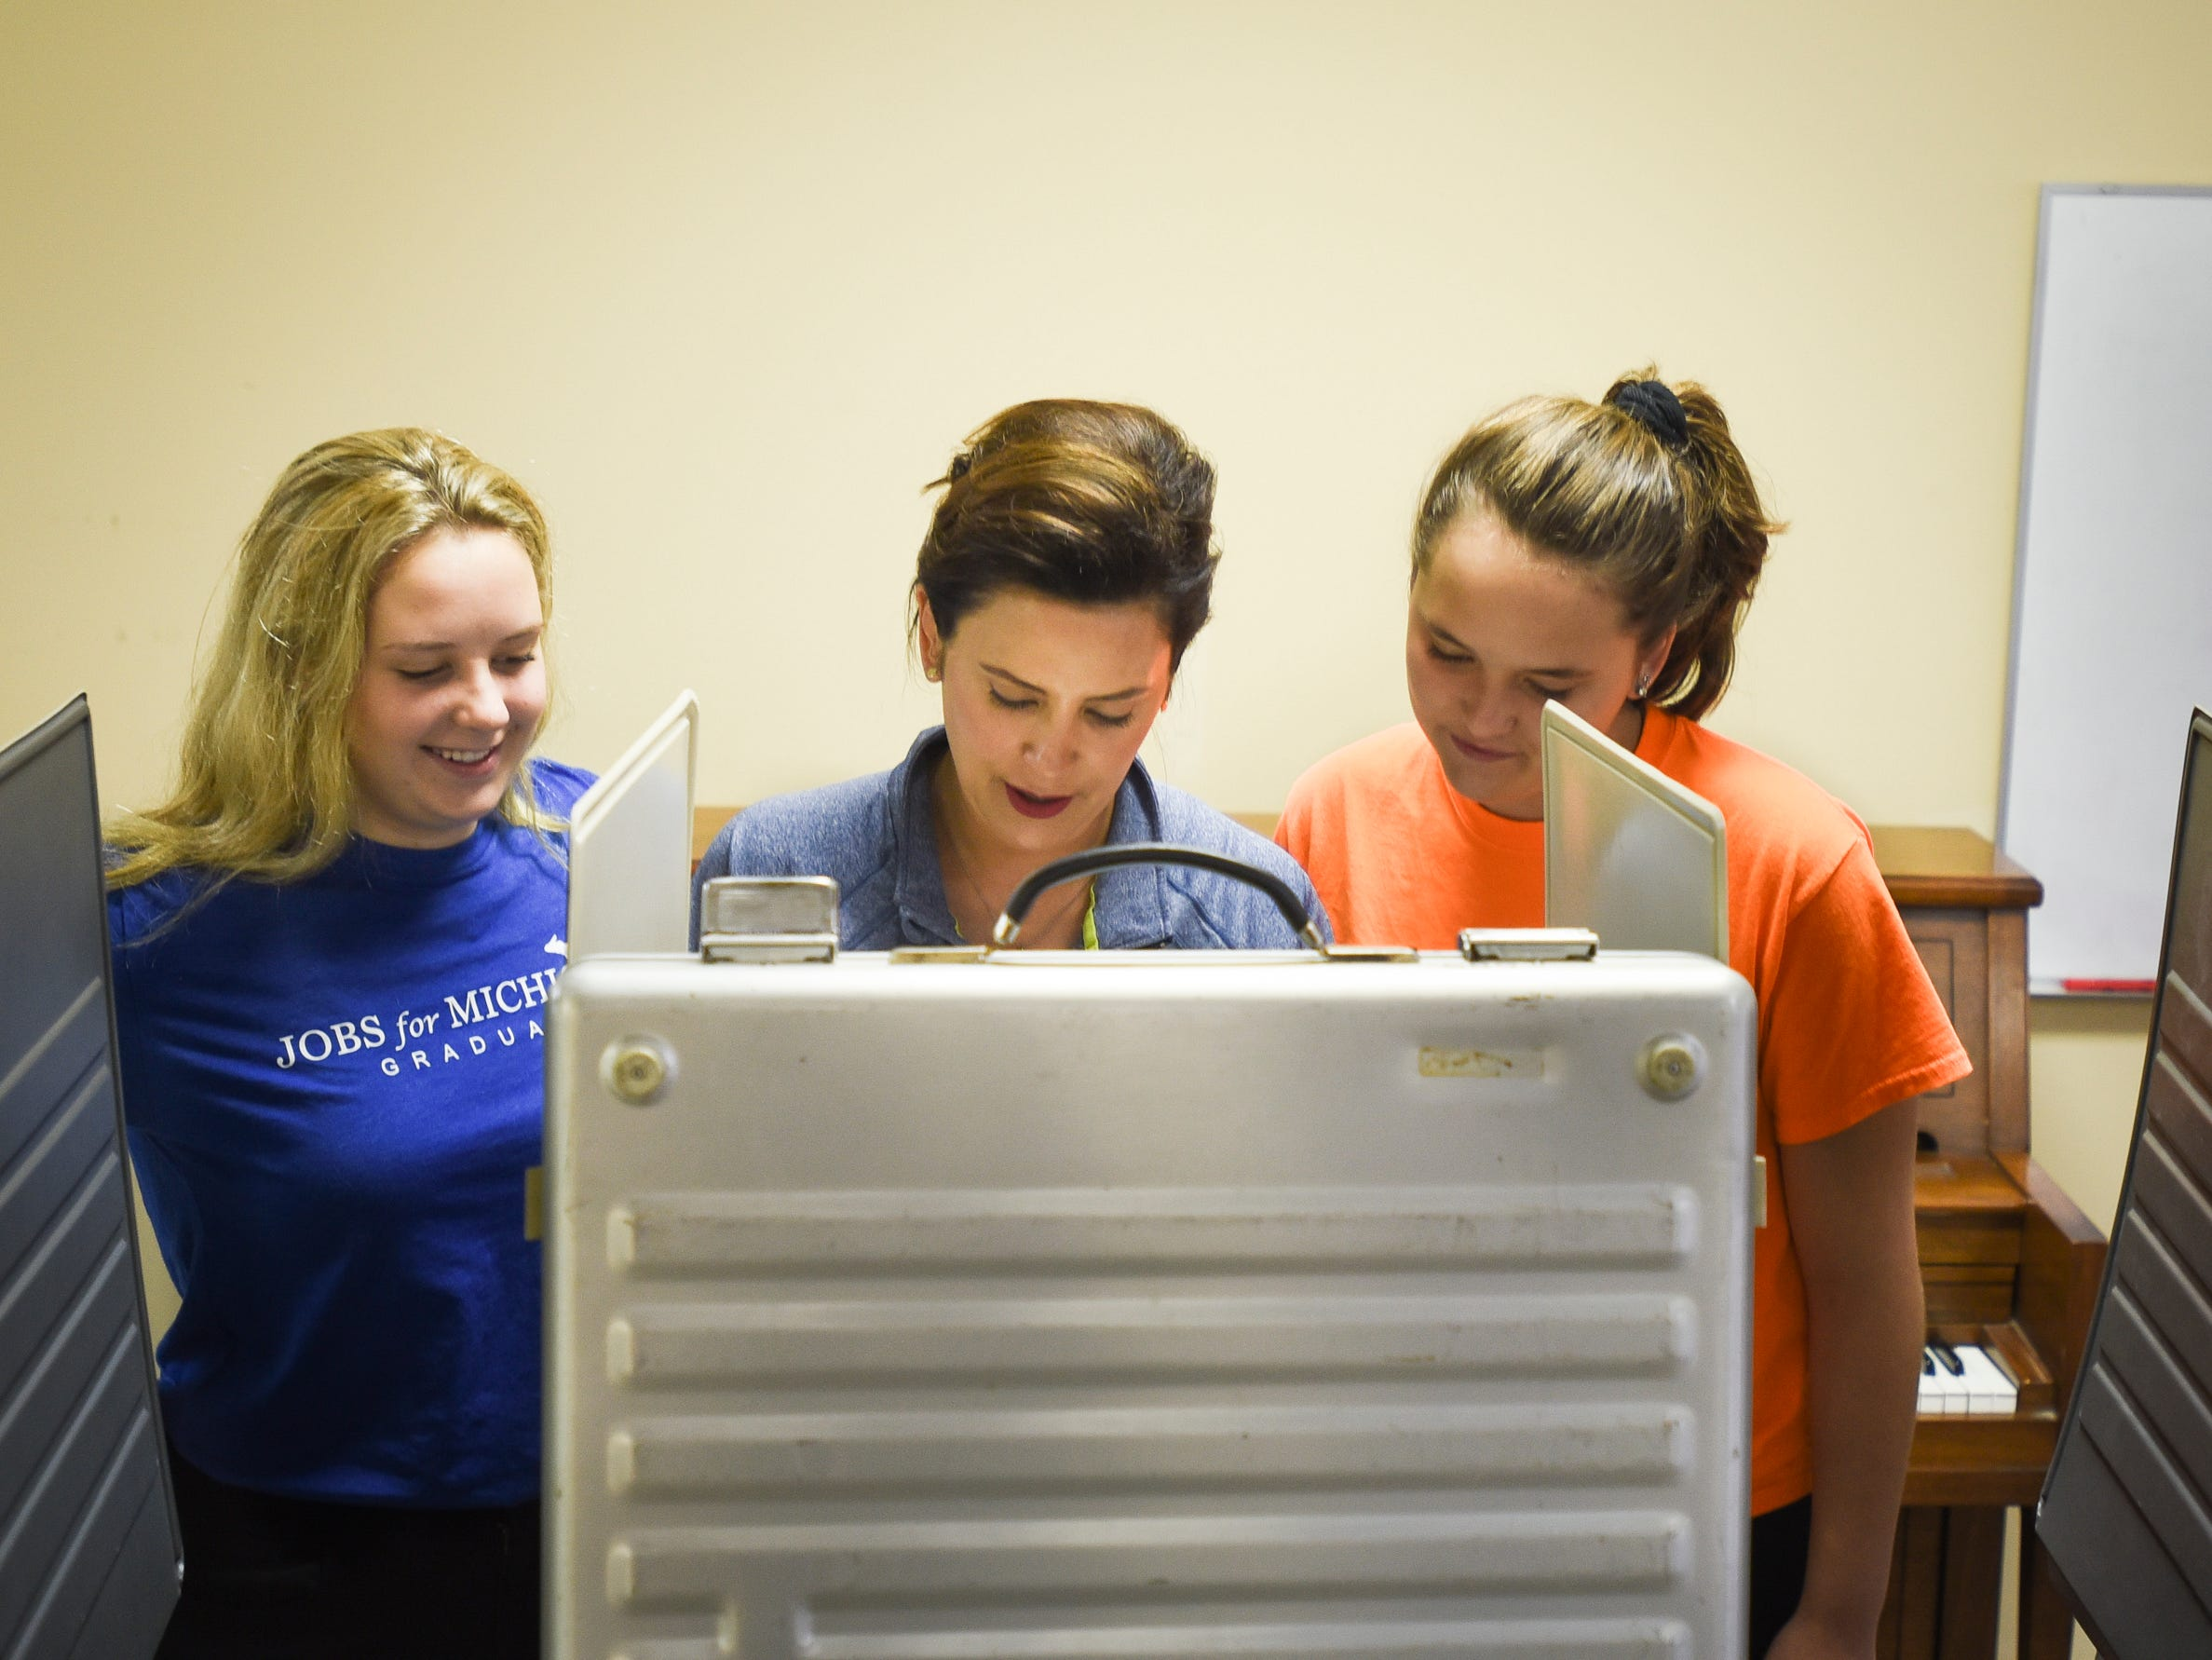 Flanked by daughters Sydney Shrewsbury, 14, left, and 11-year-old Sherry, Michigan democratic gubernatorial candidate Gretchen Whitmer fills out her ballot, Tuesday, Aug. 7, 2018, at St. Paul Lutheran church in East Lansing.